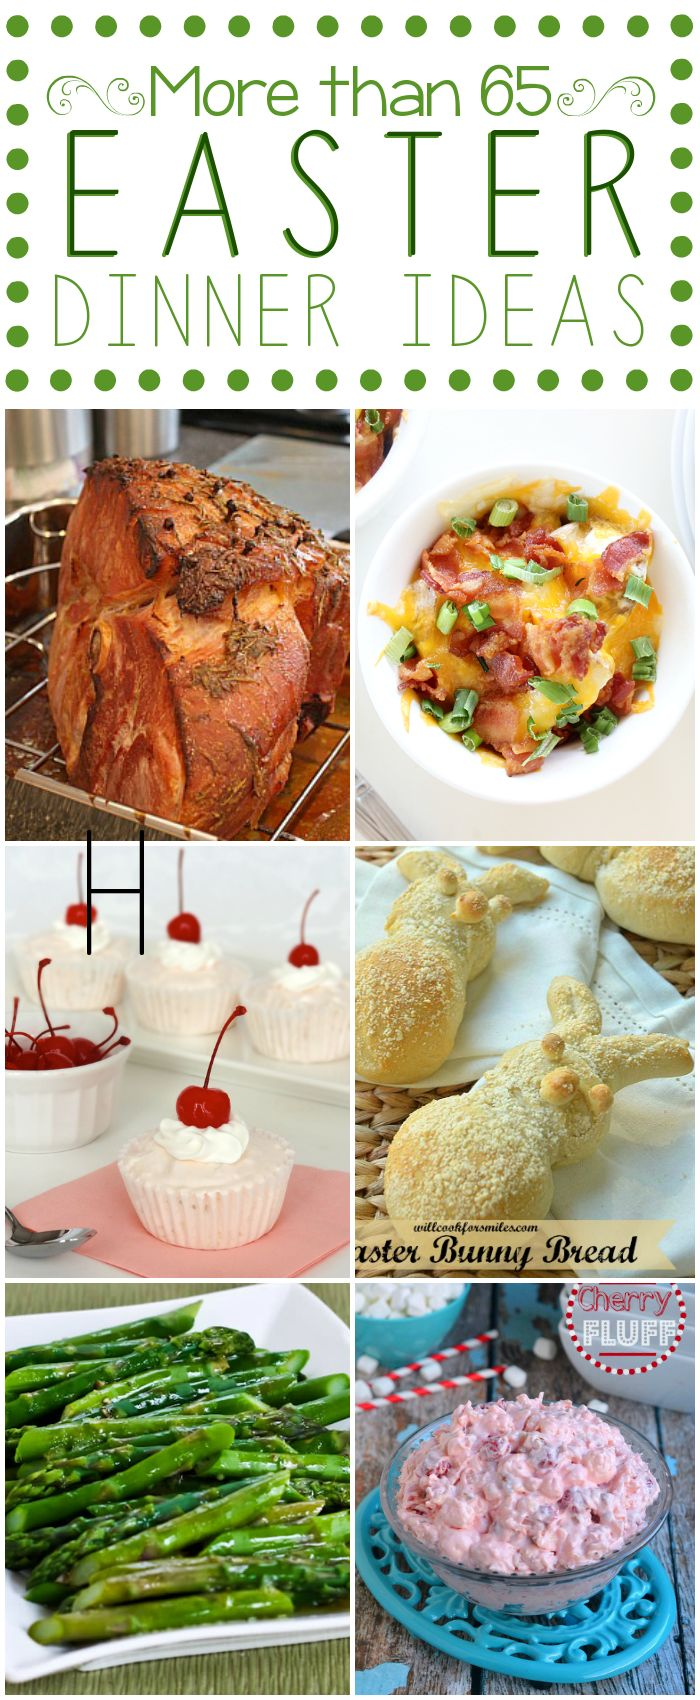 Easter Dinner Ideas {Round-Up} - more than 65 ideas perfect for your Easter table! #easter #dinner #round-up